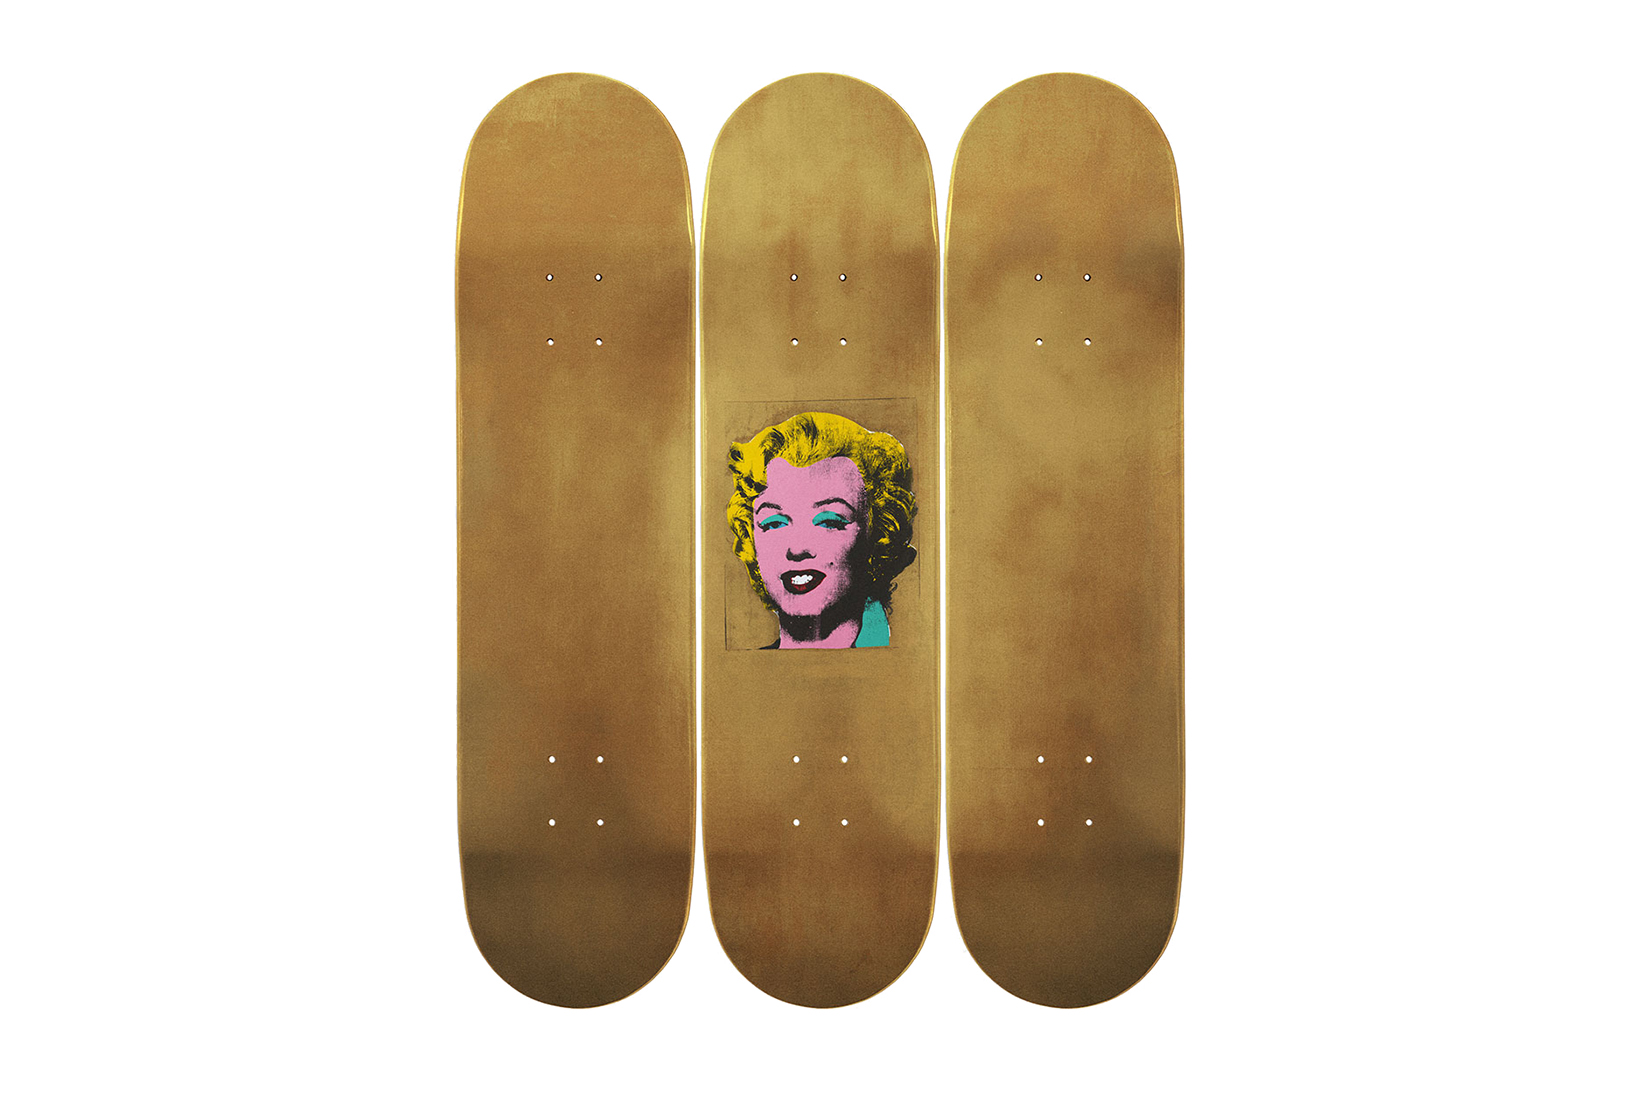 The Skateroom Teams up With the Beyeler Foundation for a Collection of Warhol-Inspired Decks